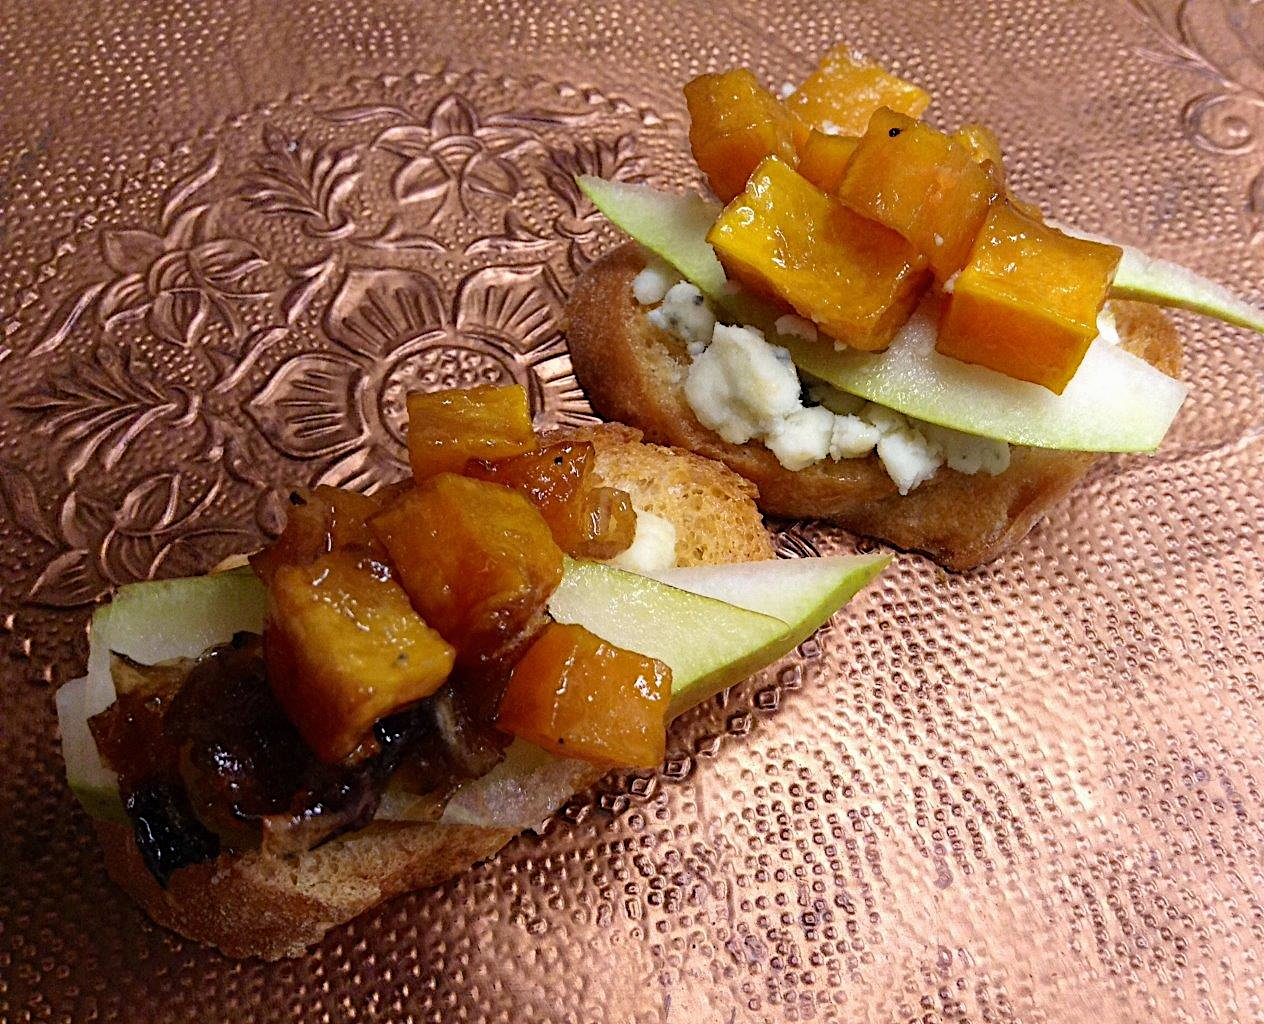 Pear and Butternut Squash Bruschetta